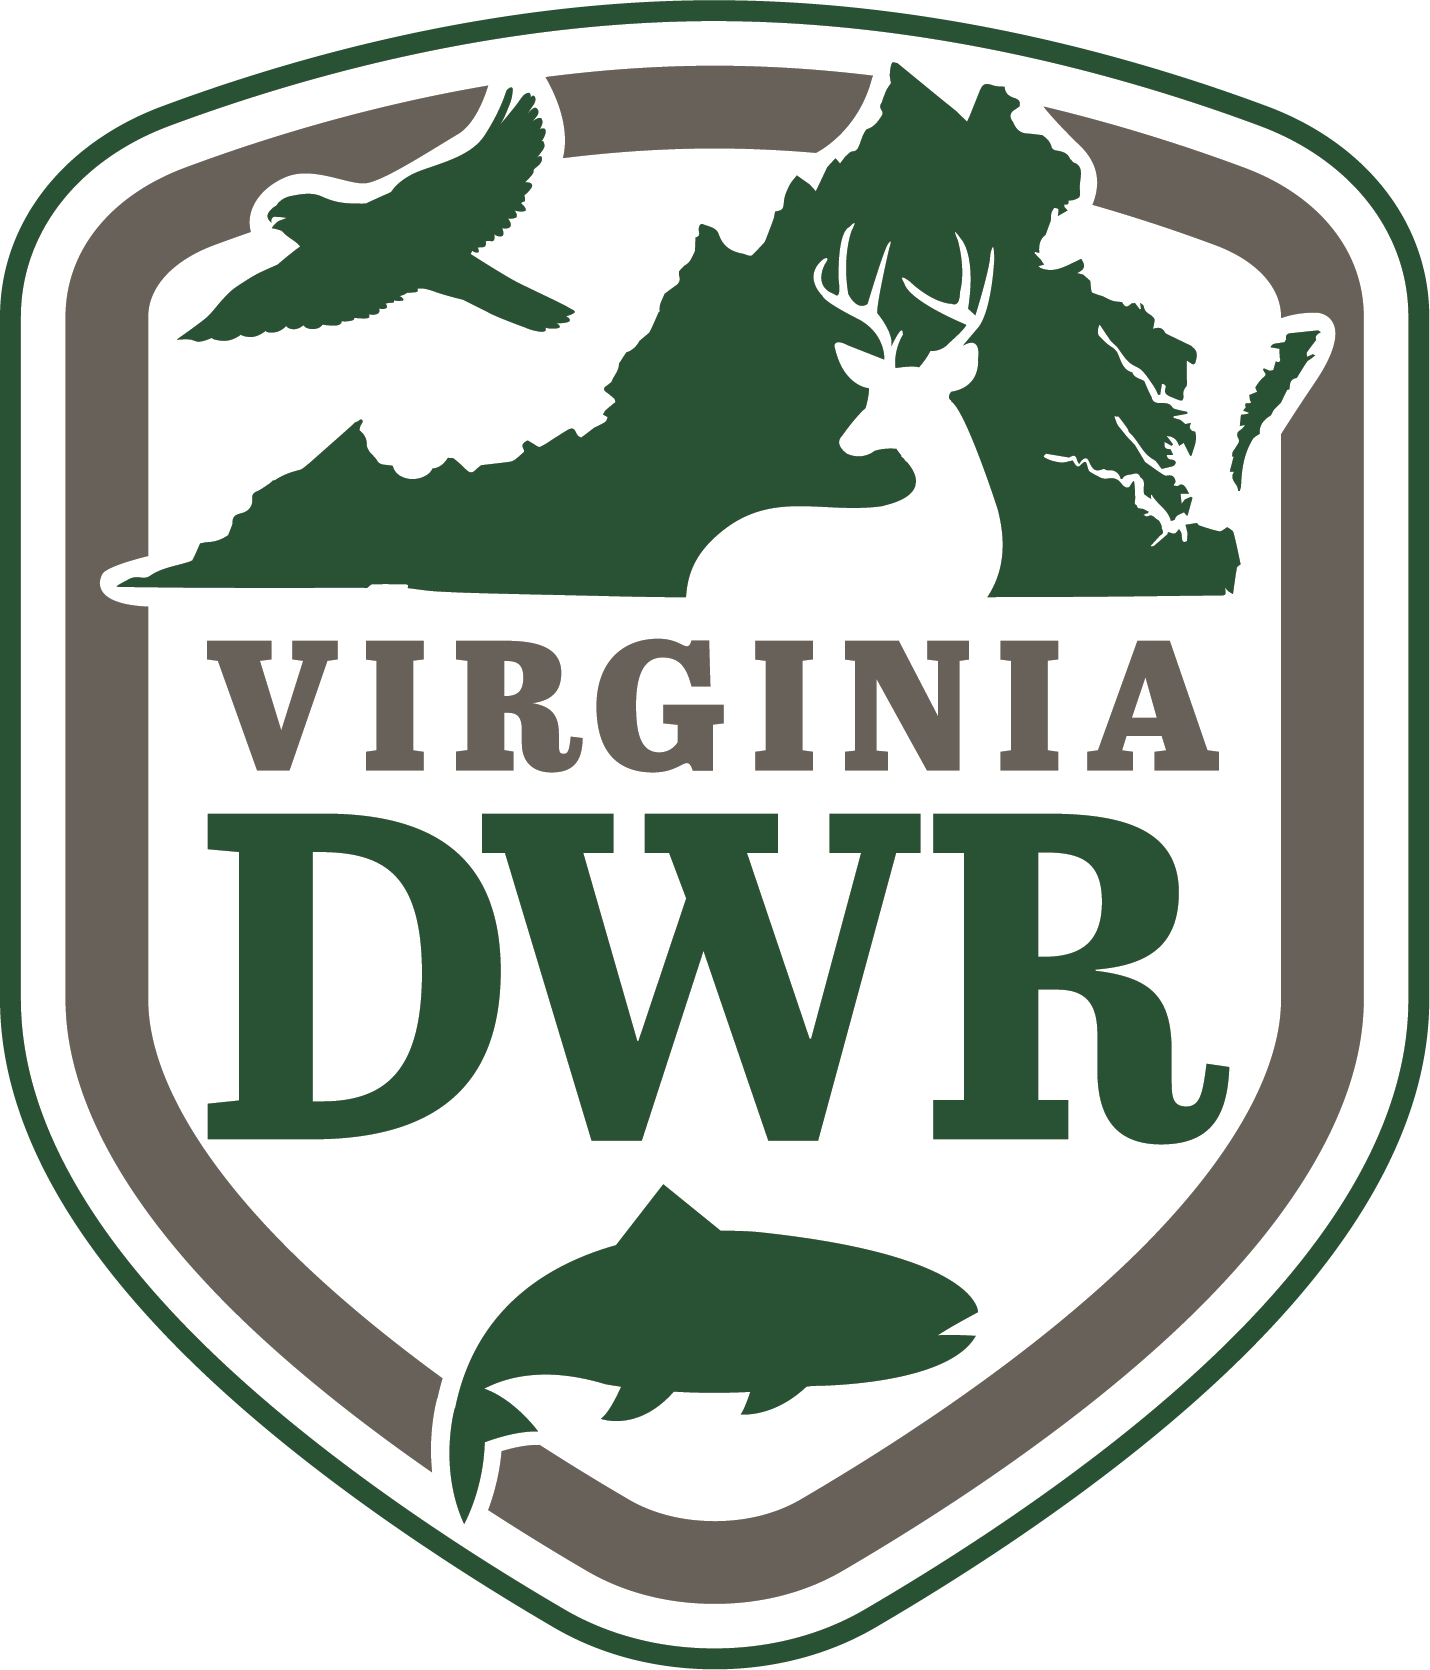 Va Game And Fish Of Virginia Department Of Game And Inland Fisheries